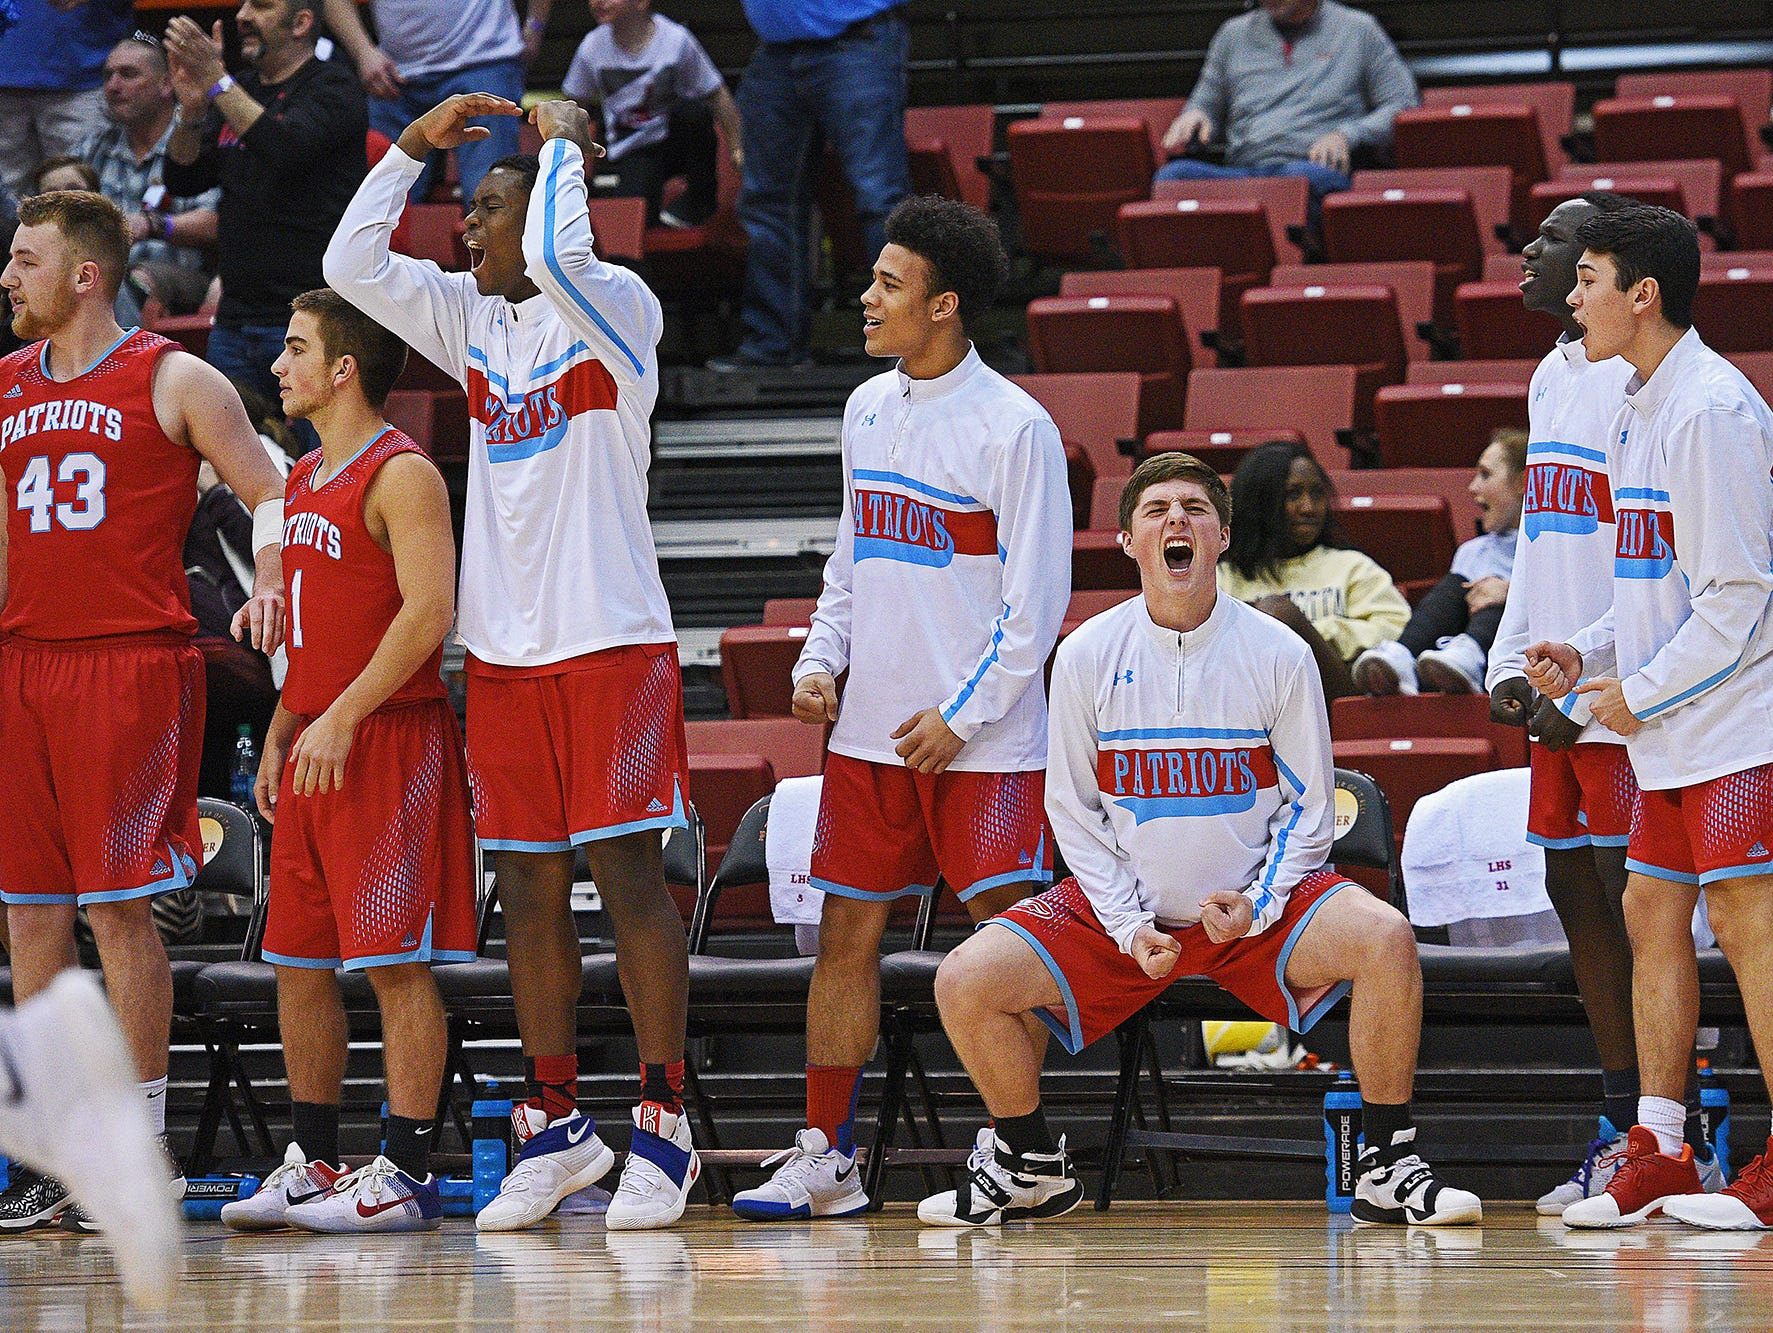 Lincoln players react from the bench after a teammate scored during a 2017 SDHSAA Class AA State Boys Basketball quarterfinal game against Huron Thursday, March 16, 2017, at Rushmore Plaza Civic Center in Rapid City. Lincoln beat Huron 56-47 in overtime.